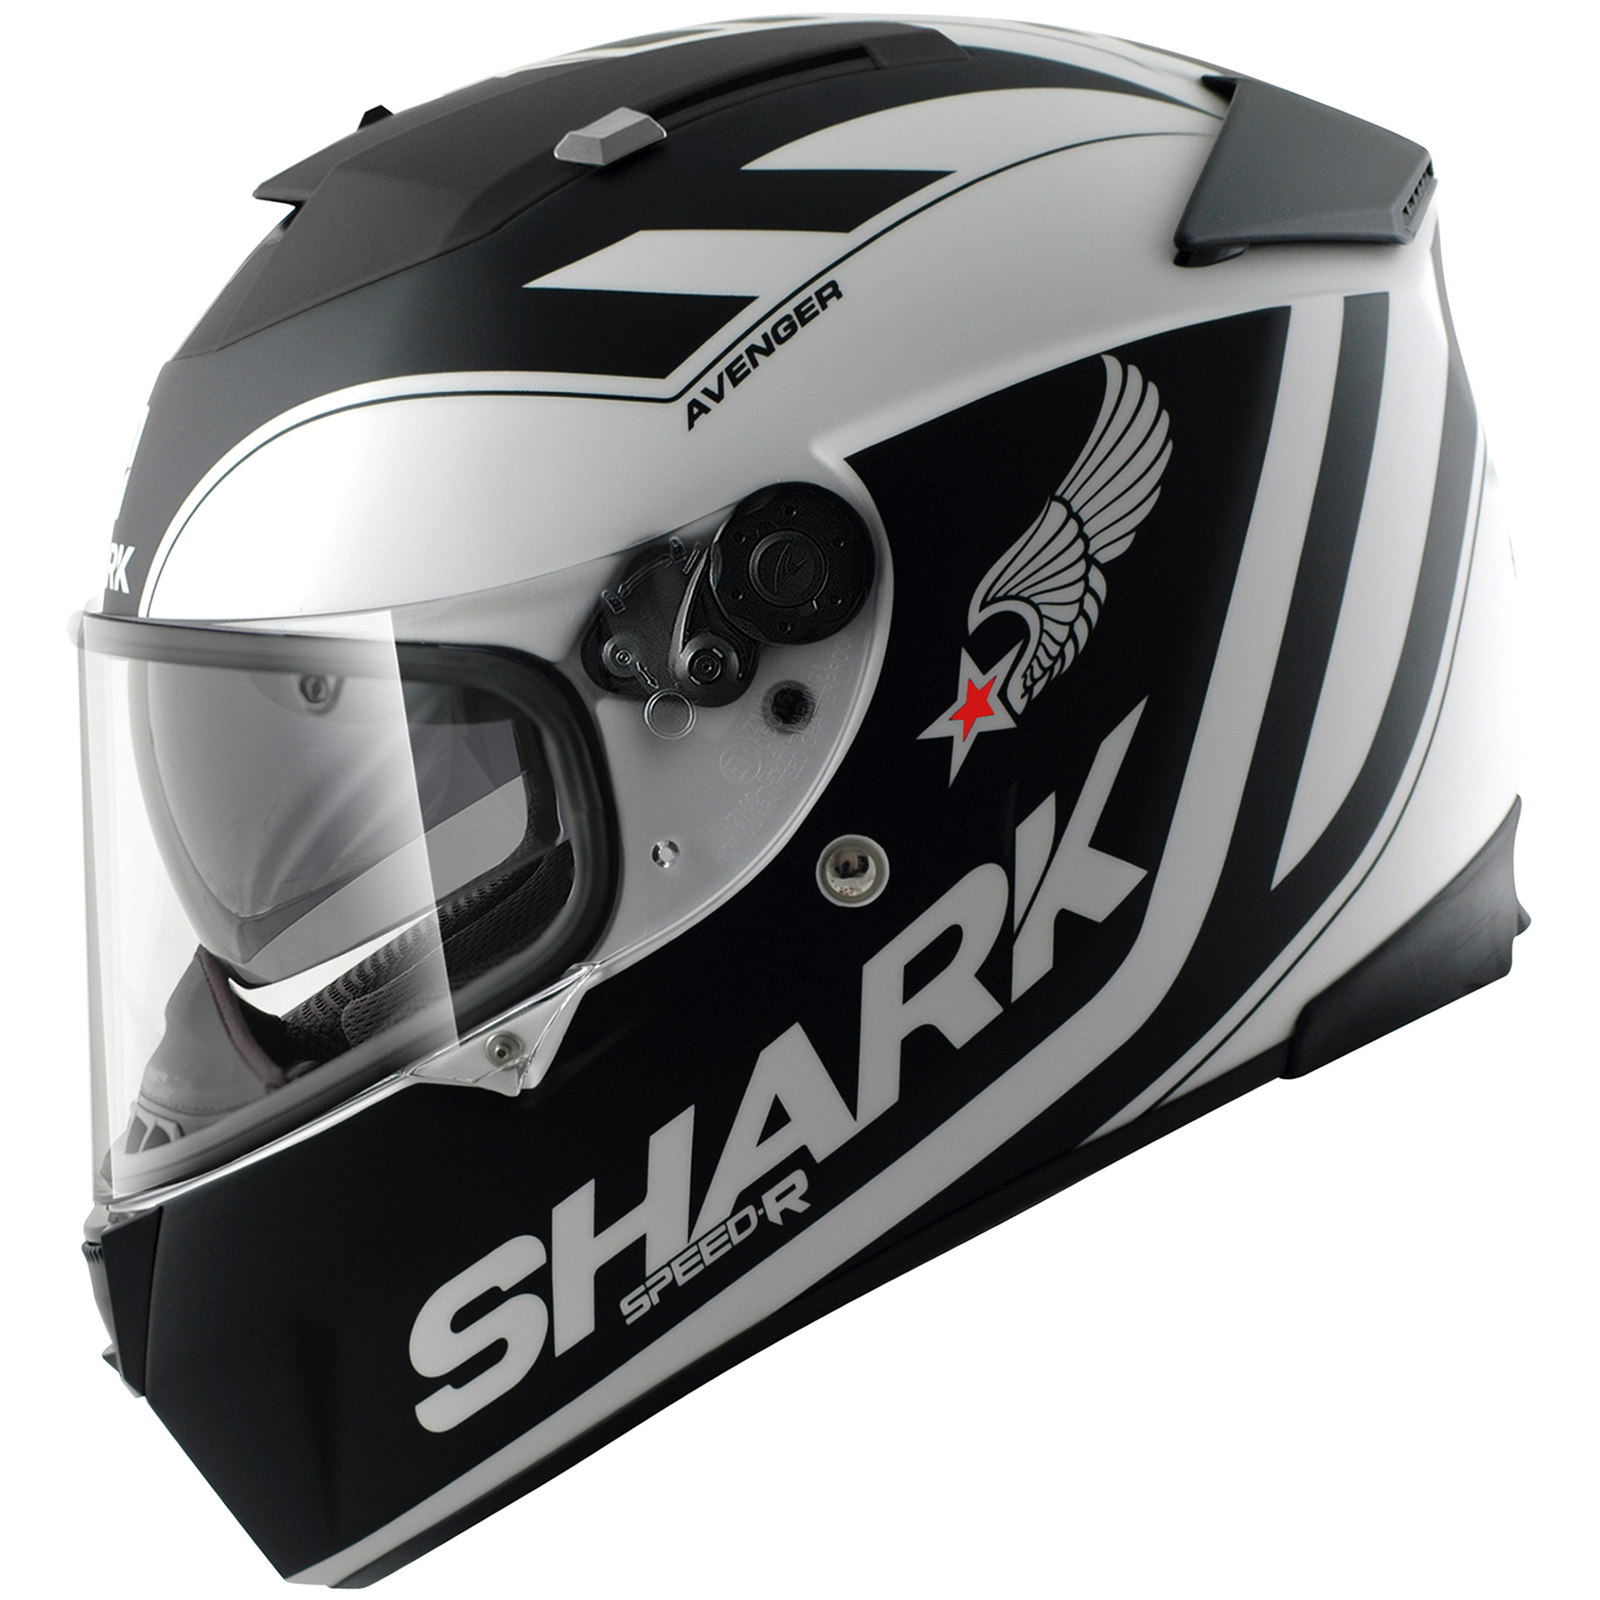 2013 shark speed r full face acu gold sports touring motorcycle motorbike helmet ebay. Black Bedroom Furniture Sets. Home Design Ideas